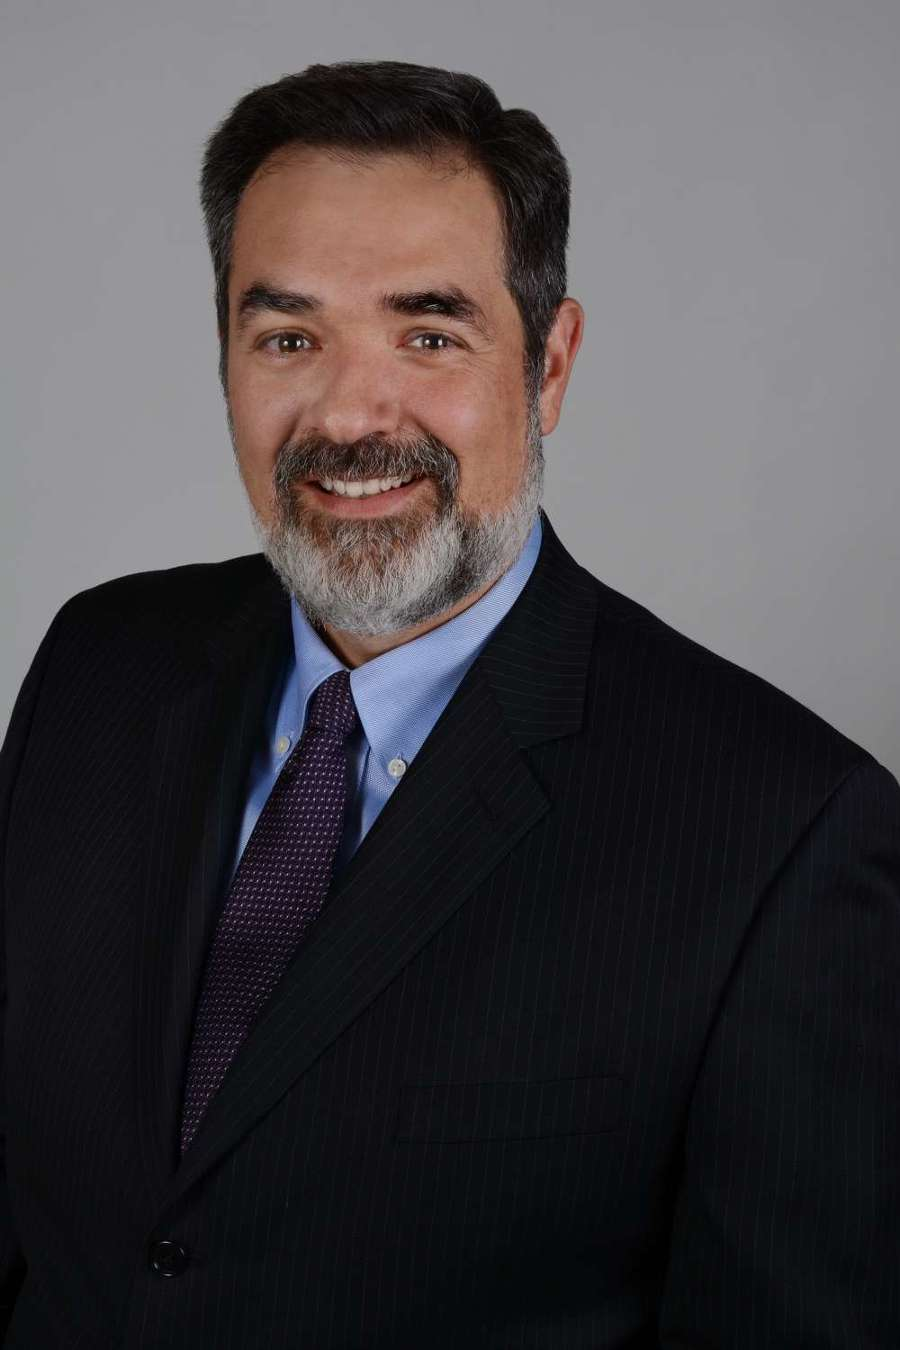 Fabian Salinas, Vice President of Sales for North America.